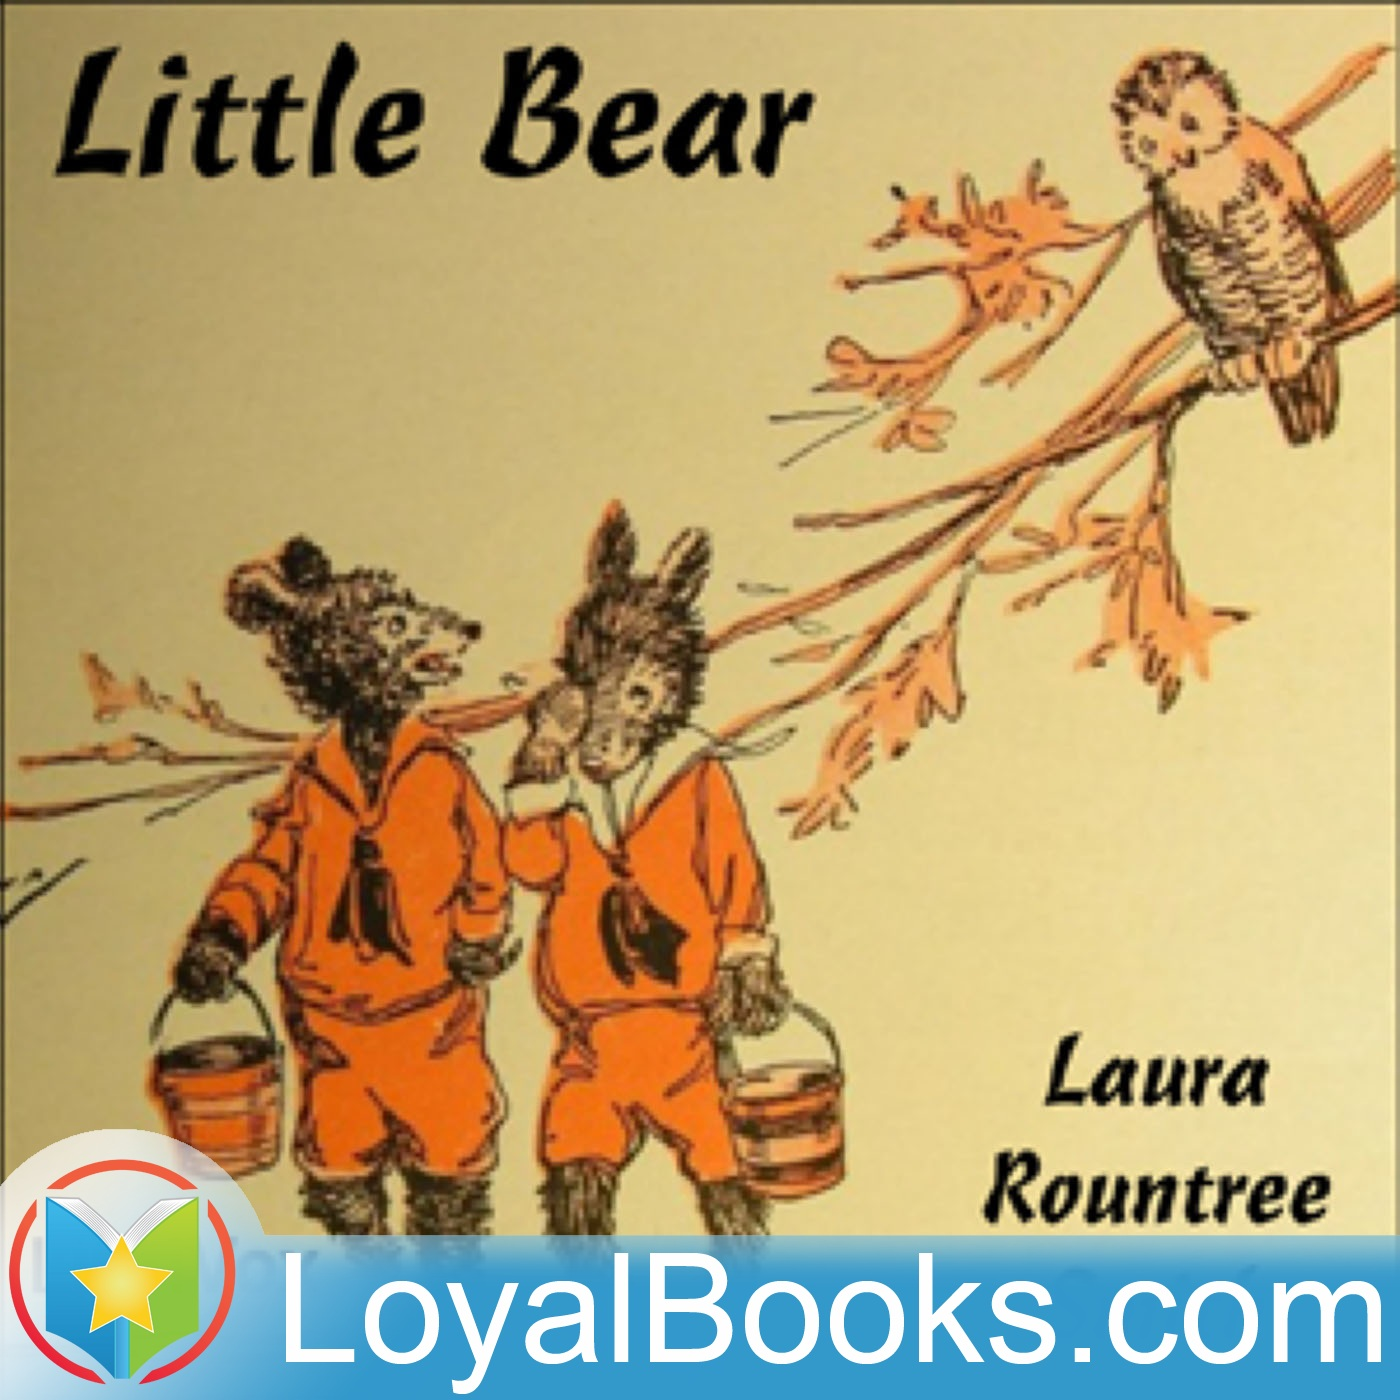 <![CDATA[Little Bear by Laura Rountree Smith]]>